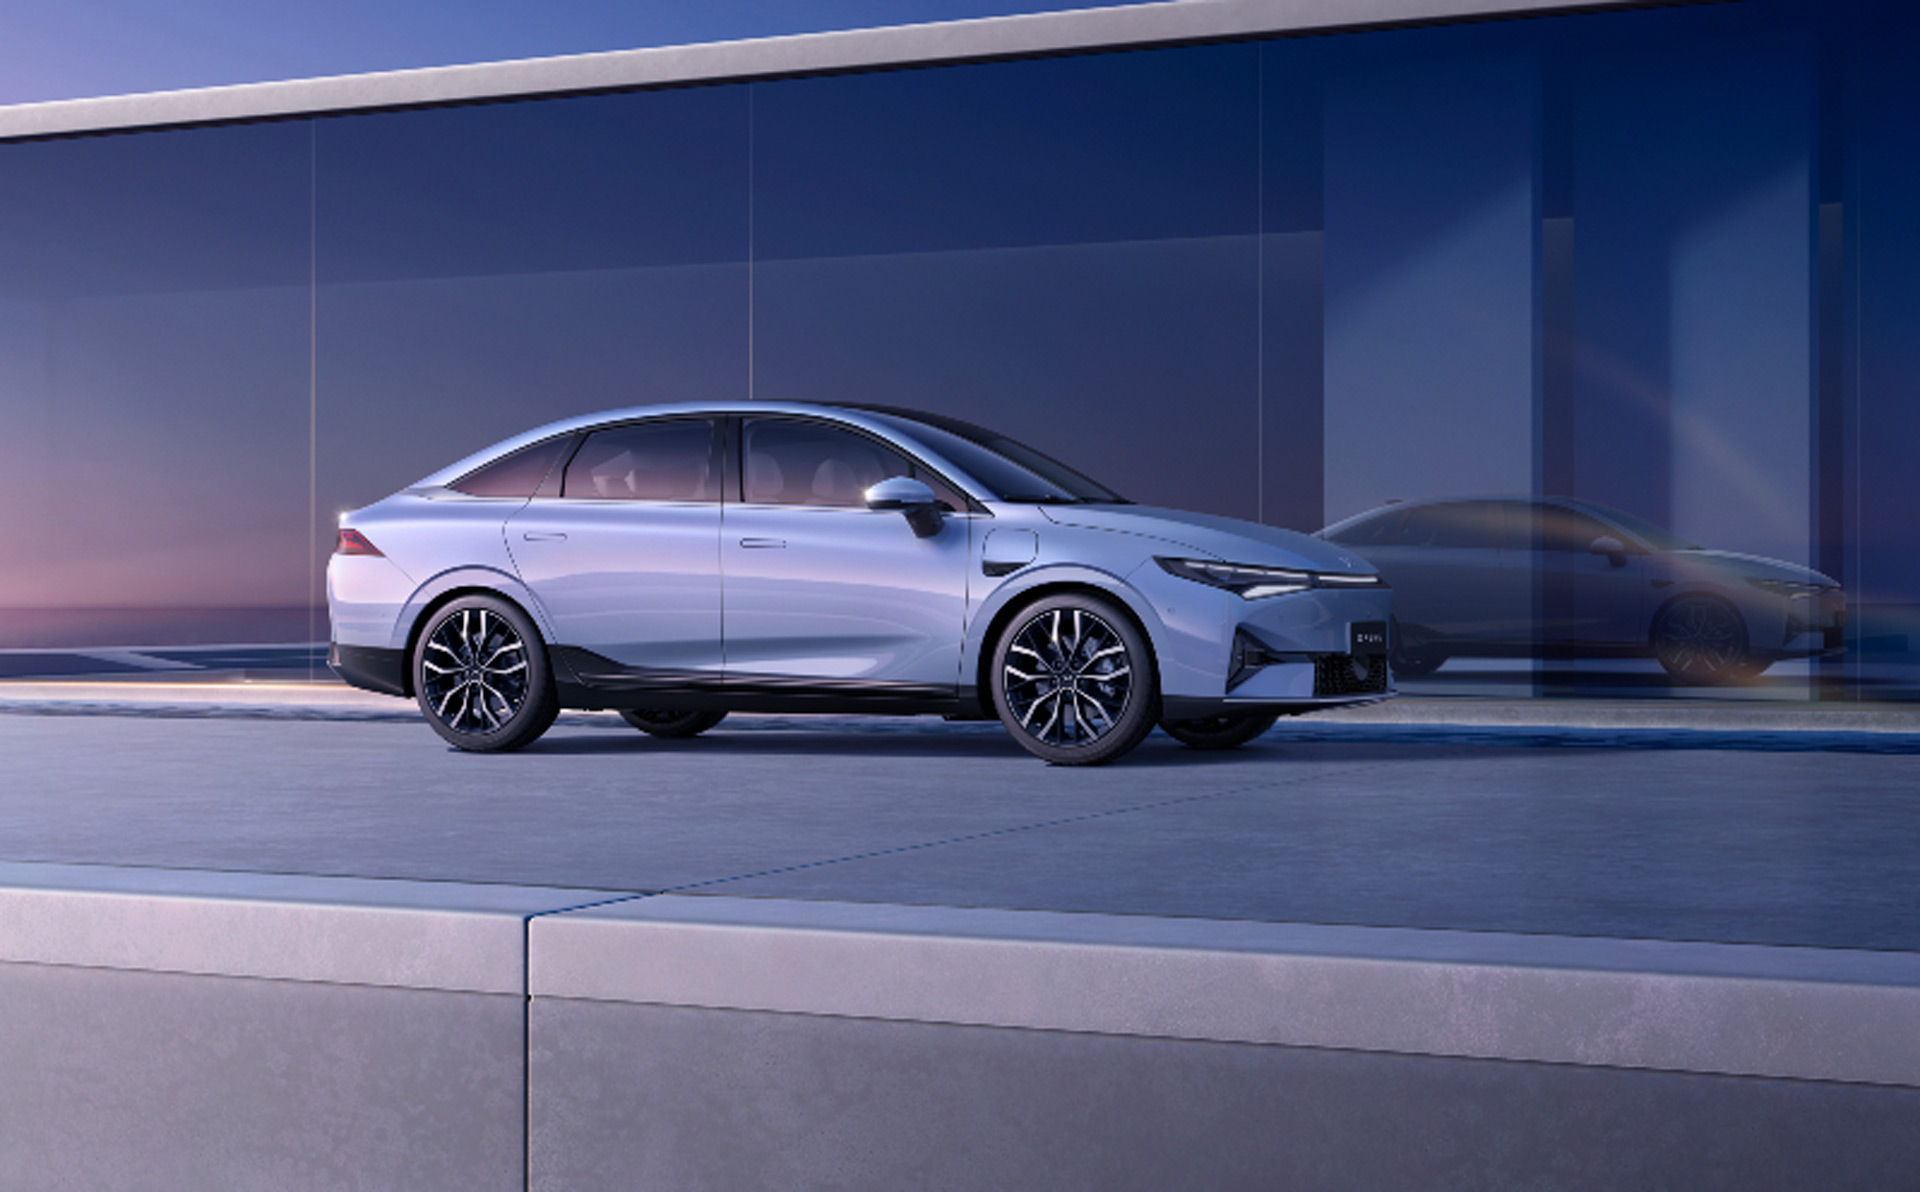 Xpeng P5 electric sedan starts around $25,000, leads in driver-assistance tech, aims for Europe